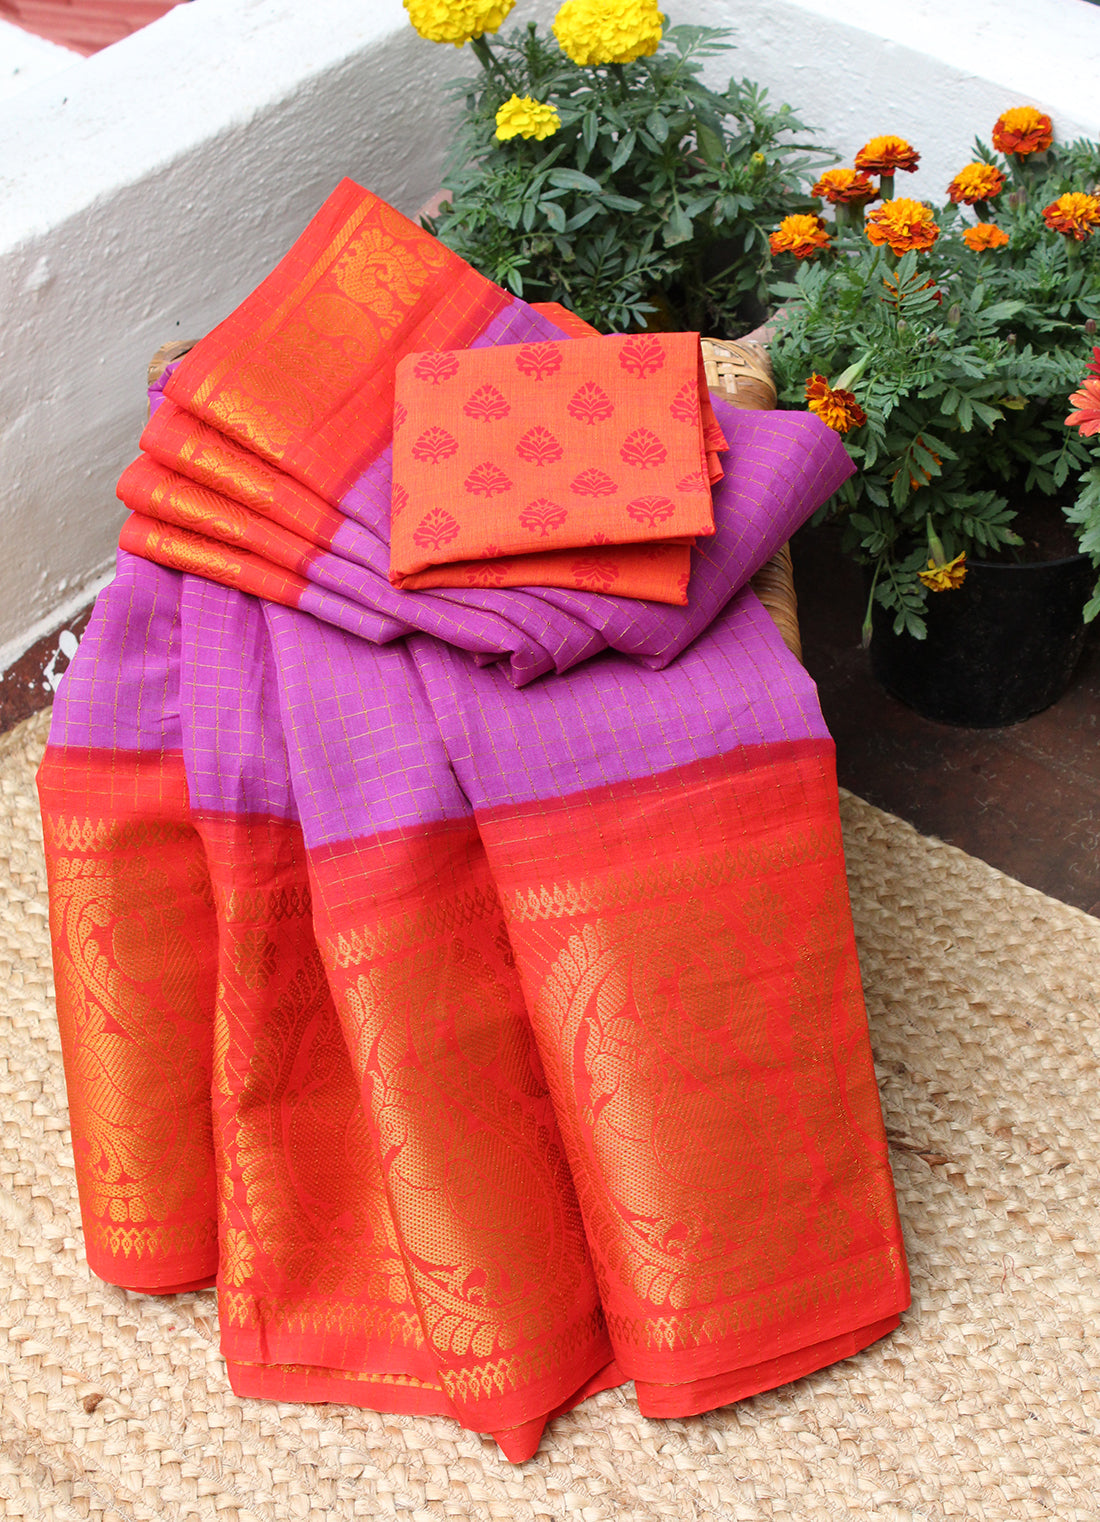 Violet and Red Handcrafted Madurai Sungudi Checkered Cotton Saree with Orange South Cotton Printed Blouse Piece